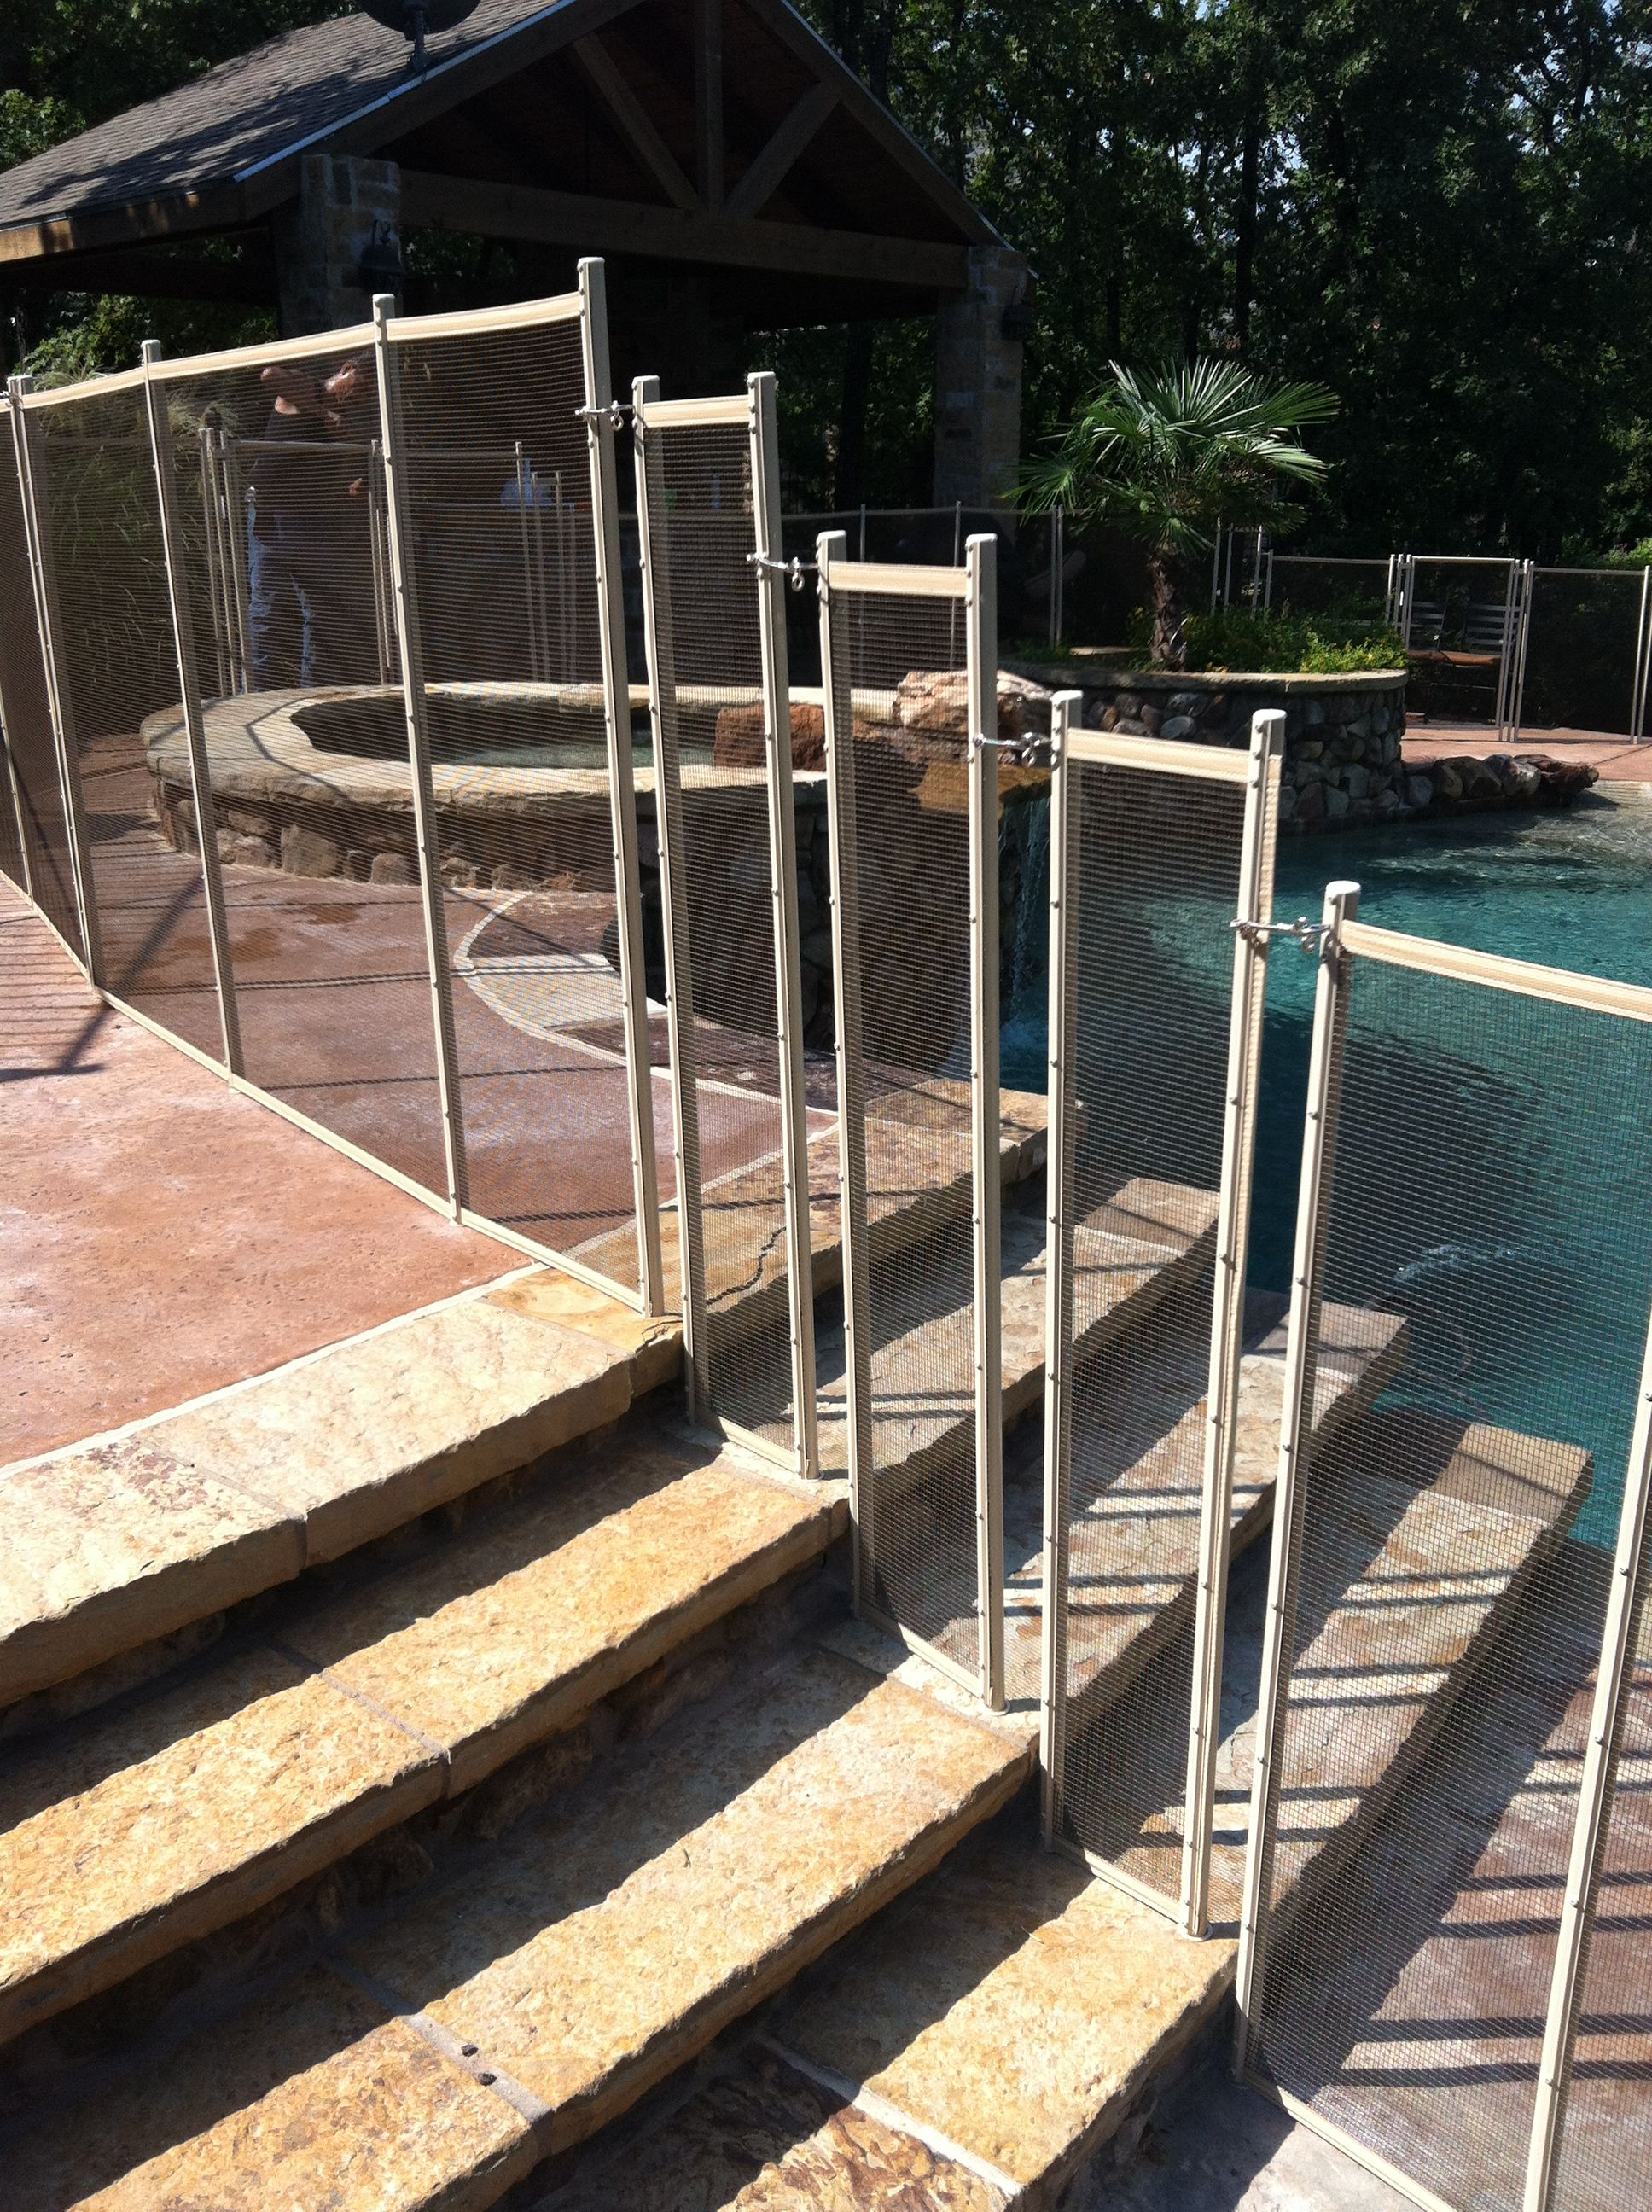 Brown Mesh Pool Fence With Beige Border And Poles Installed On Stairs Backyard Fences Rustic Fence Easy Fence